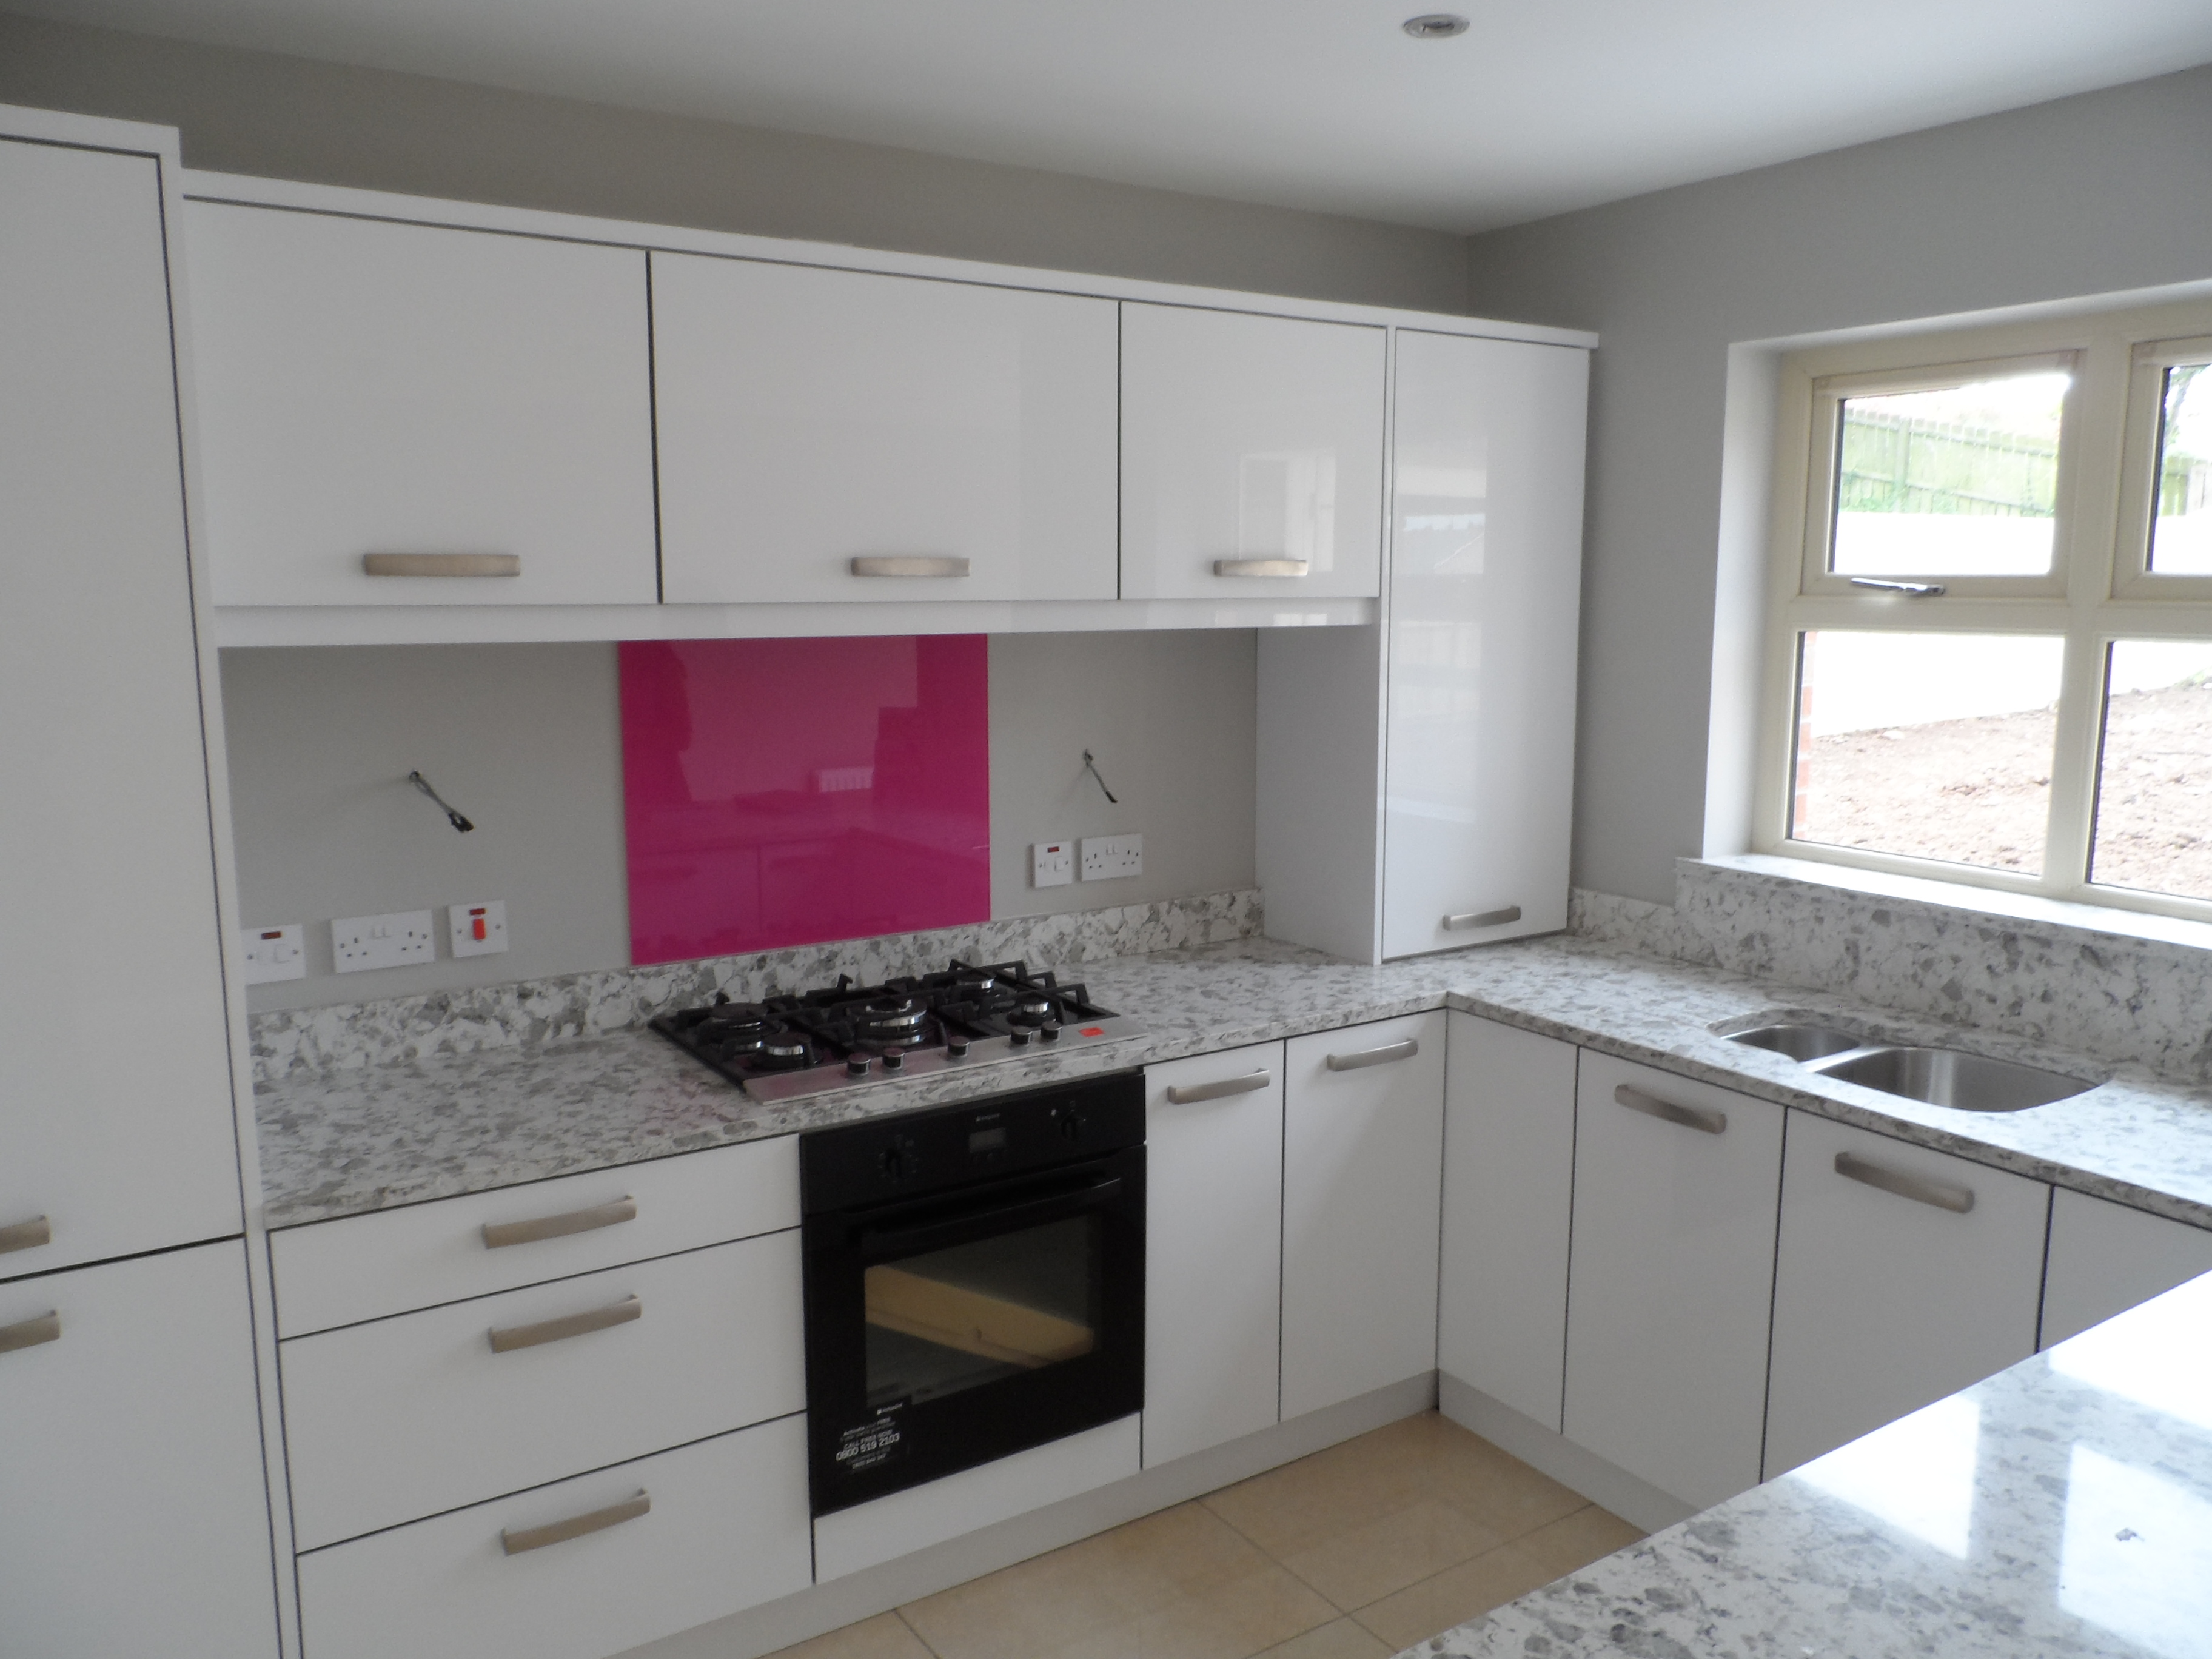 Kitchens Direct Kitchens Direct Ni Show House Kitchen Kitchens Direct Ni